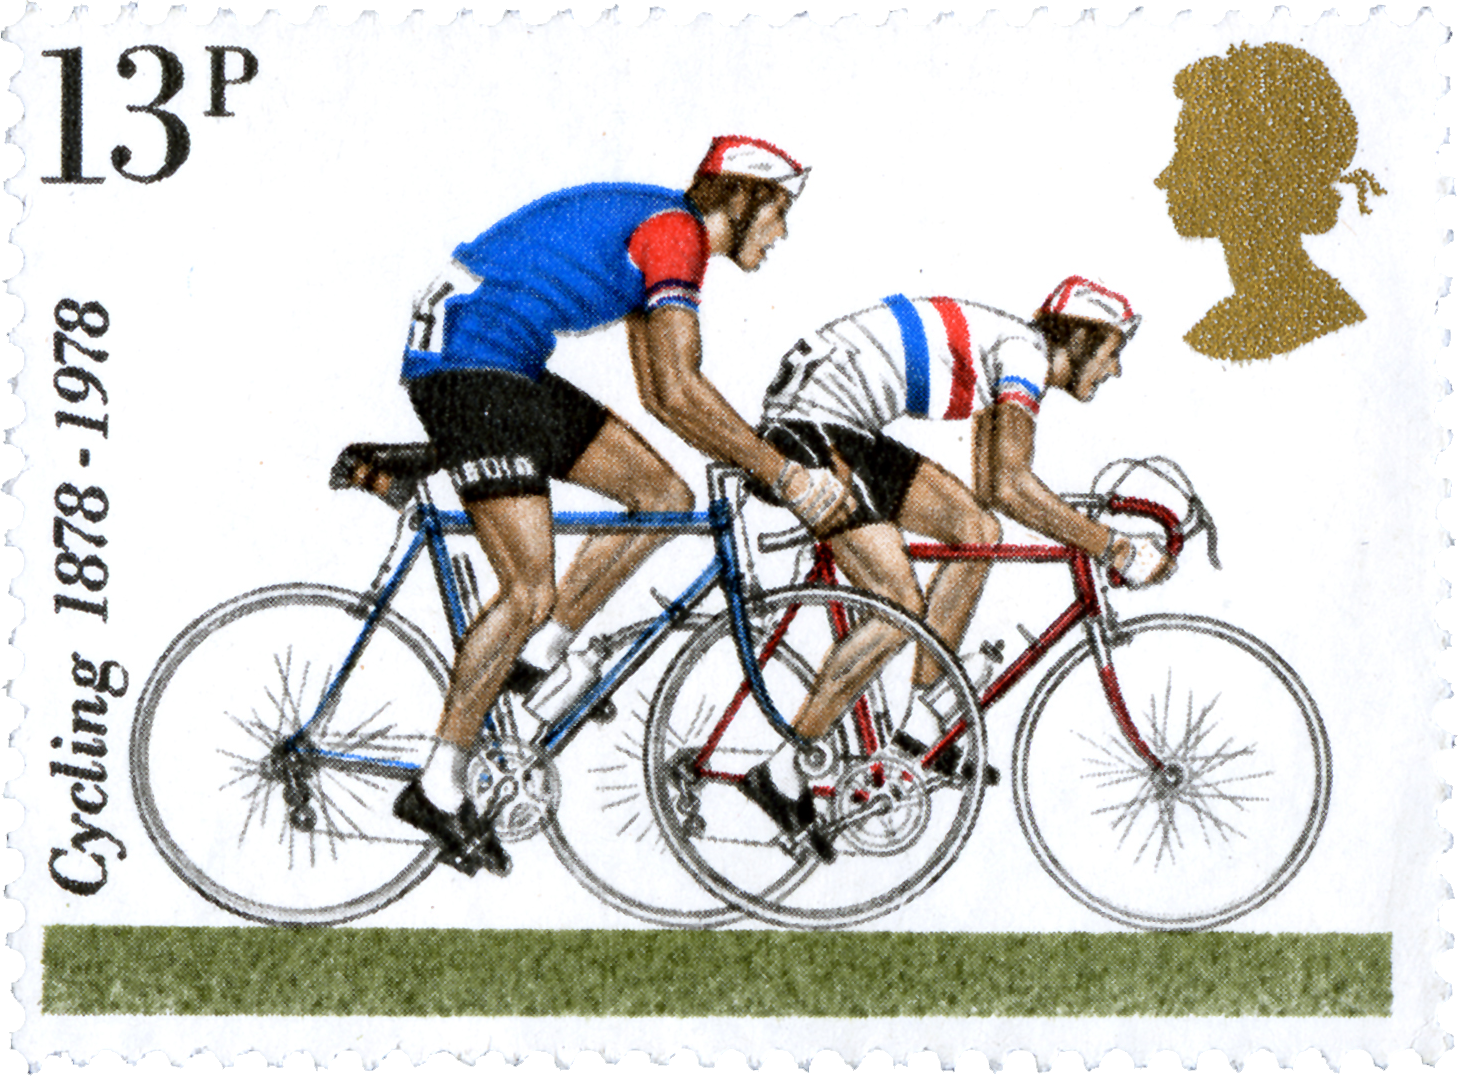 1978 Road Racers Specialstamp From 1978 Centenaries Of Cyclists Touring Club And British Cycling Federation Commemorative Stamps Stamp Post Stamp